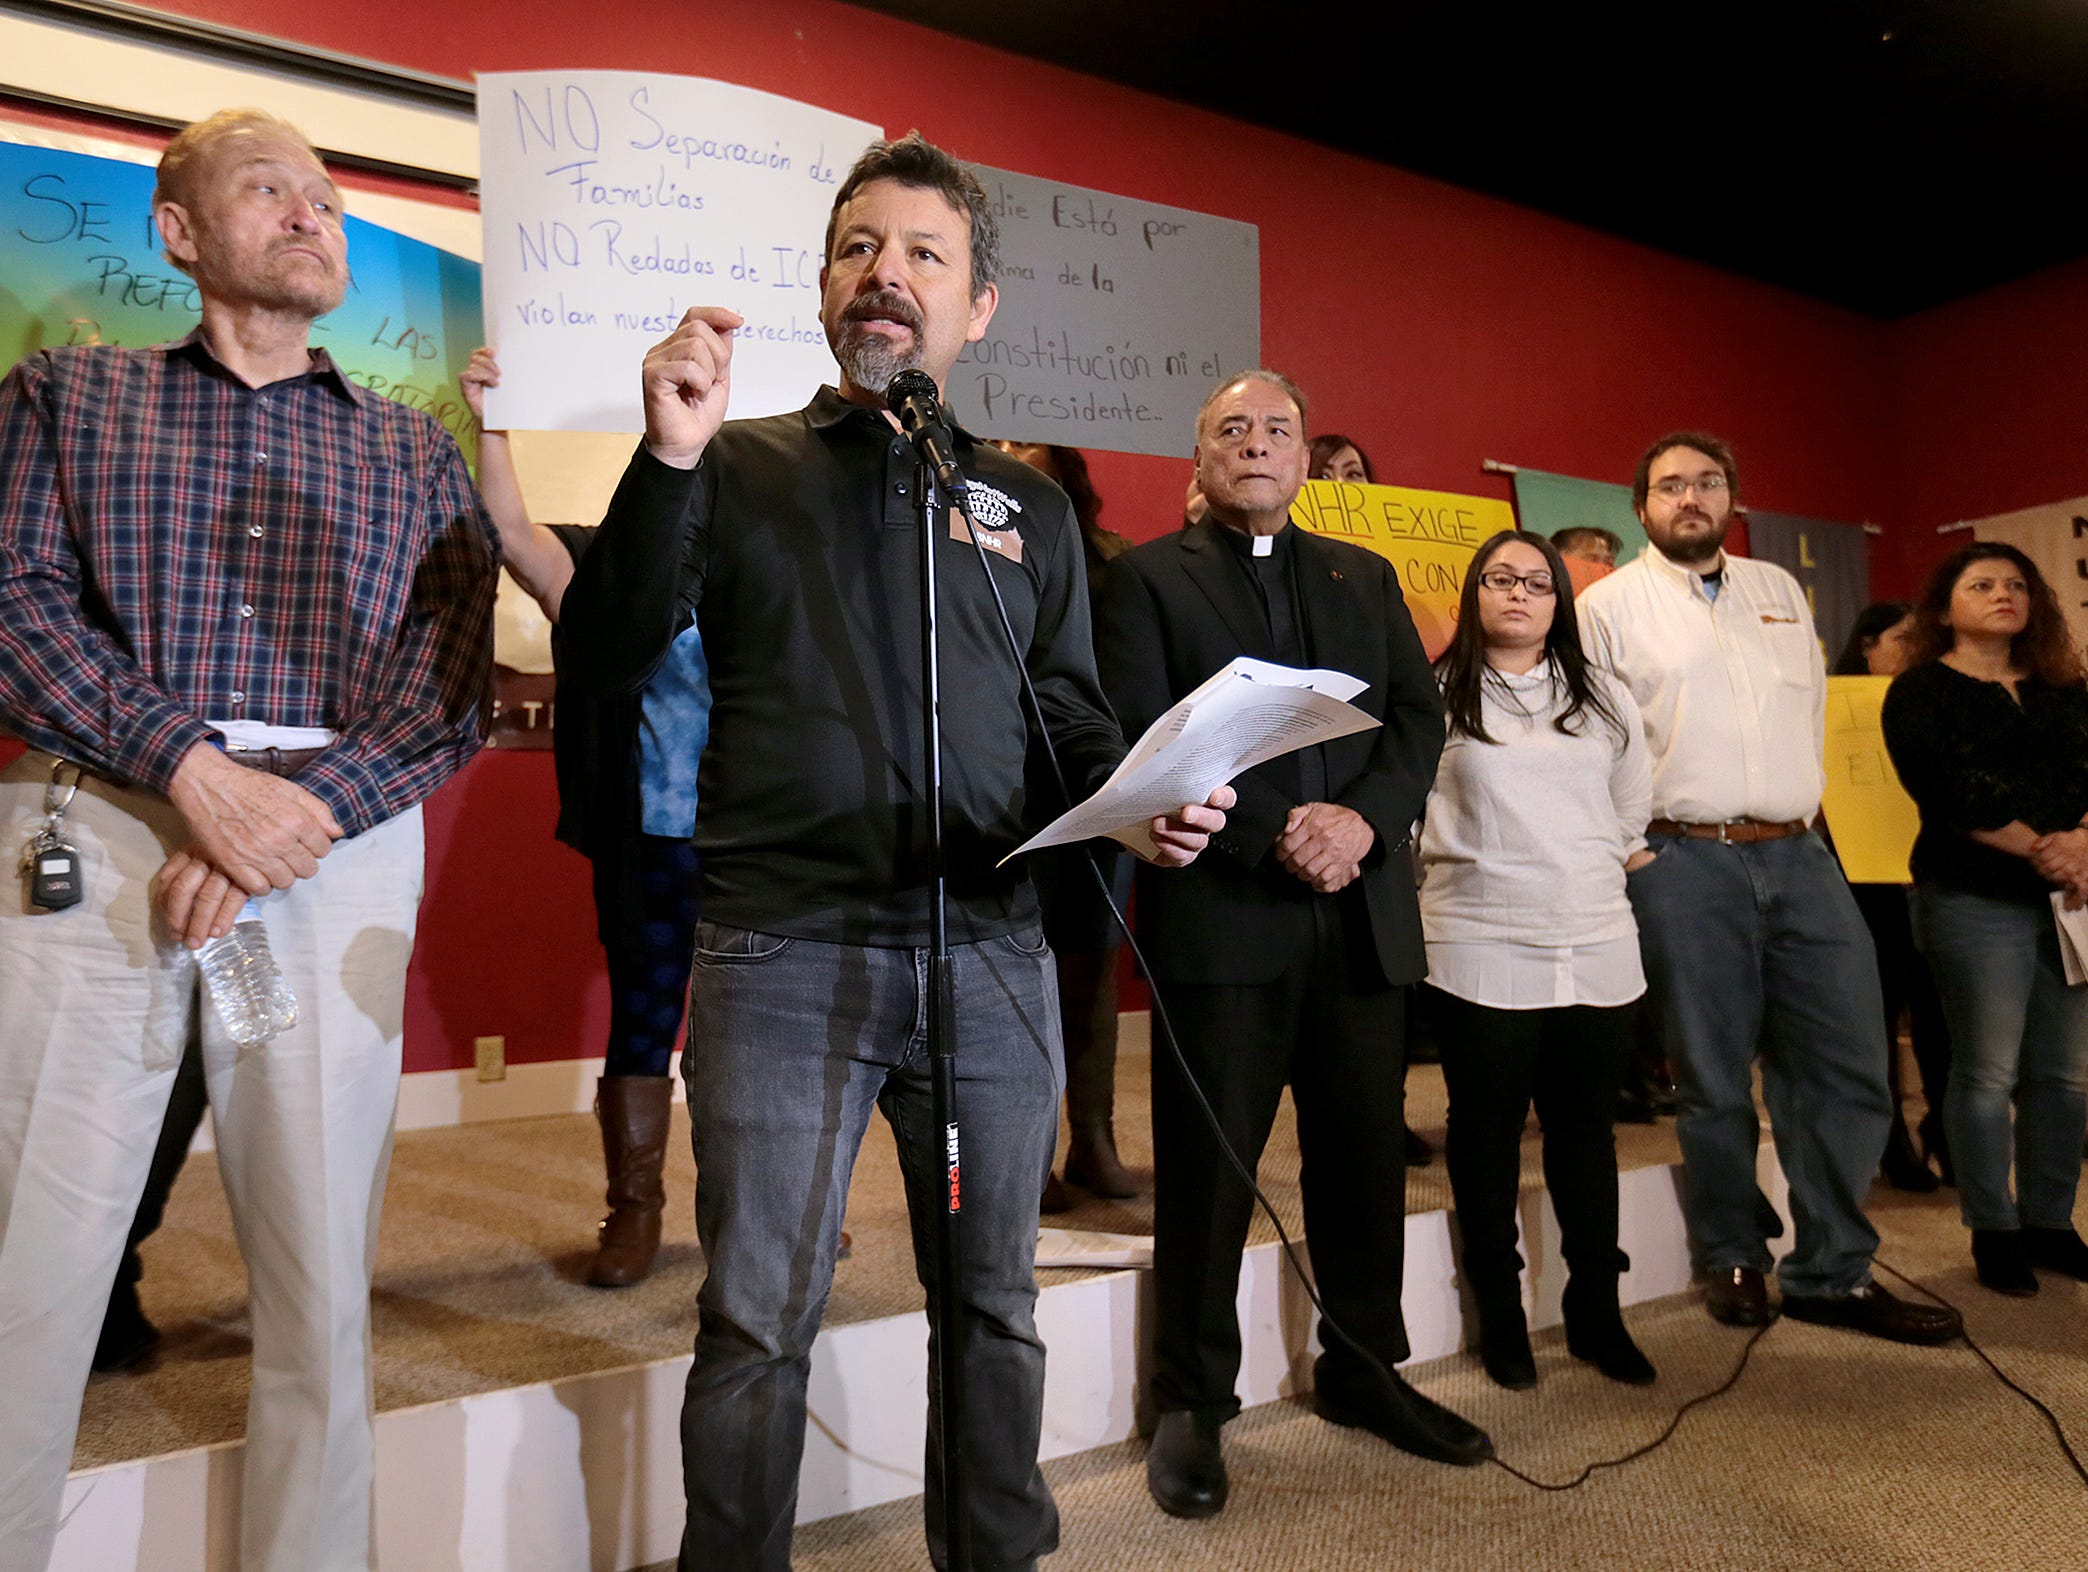 Fernando Garcia, executive director of the Border Network for Human Rights, lays out the organization's plans for 2019 and denounces President Donald Trump's immigration tactics.